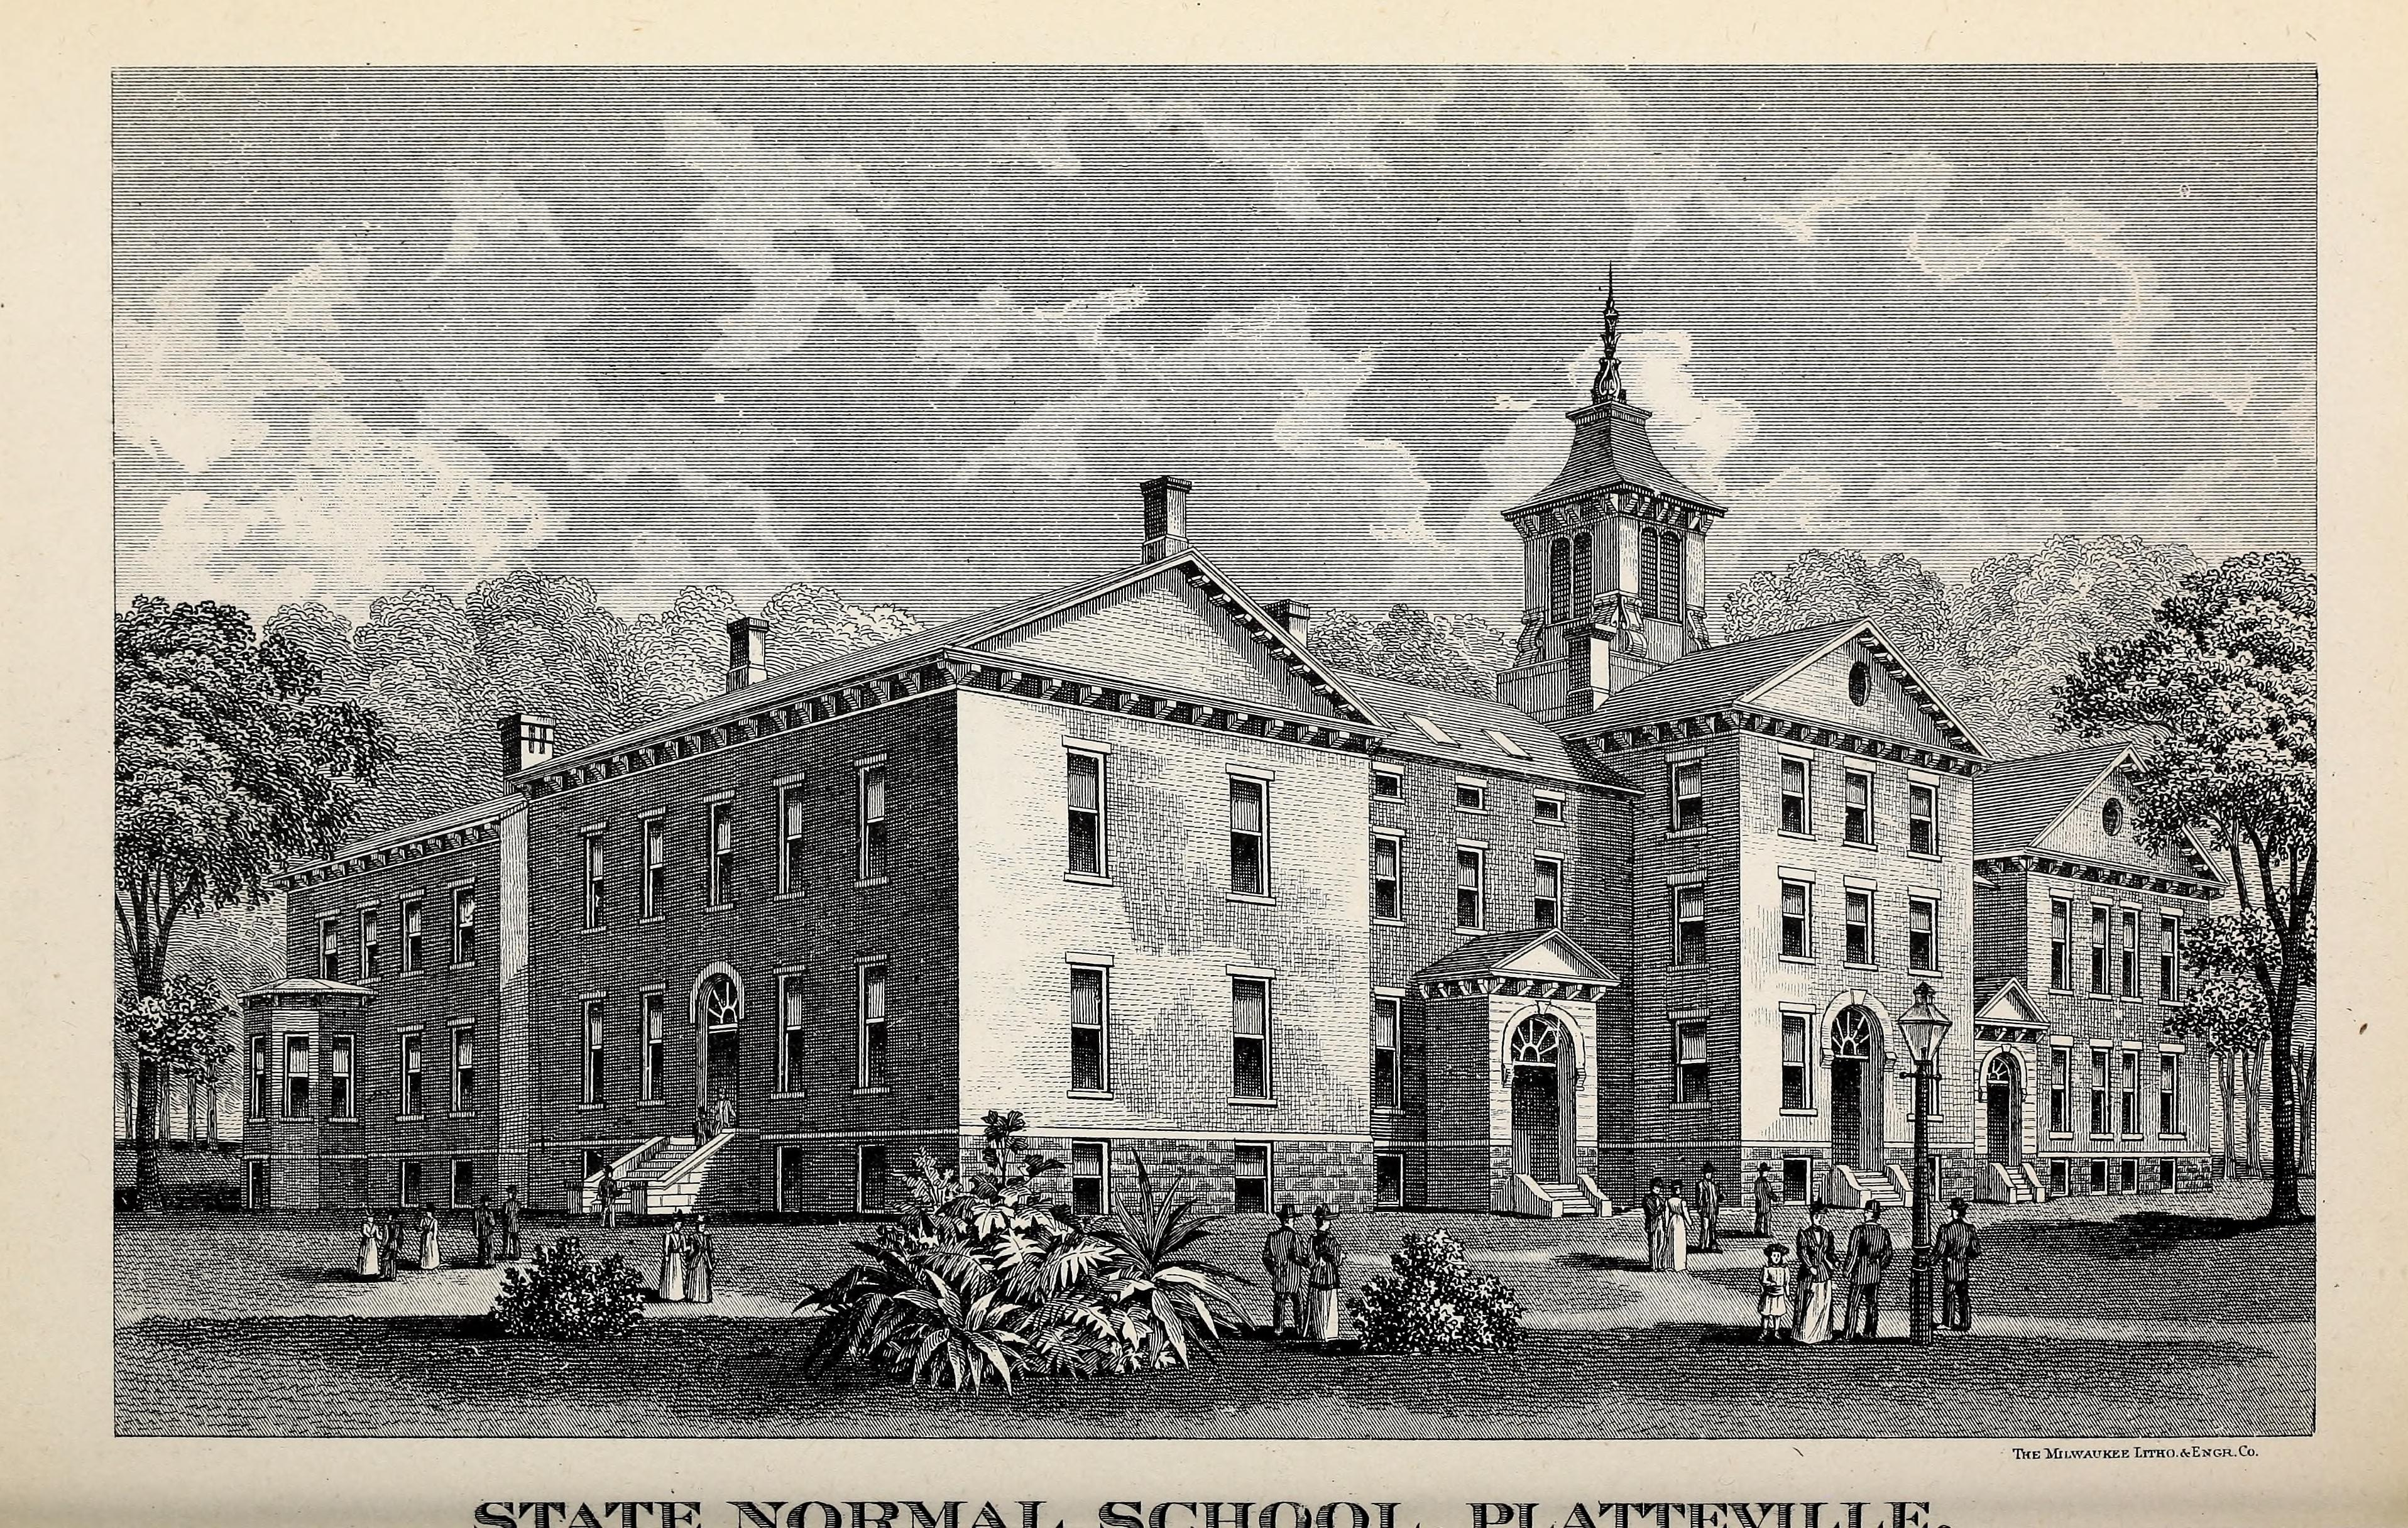 state treasury, up to October 1, 1892, for real estate, build-ings, improvements, repairs and current expenses of the school, in all, the sum of$1,267